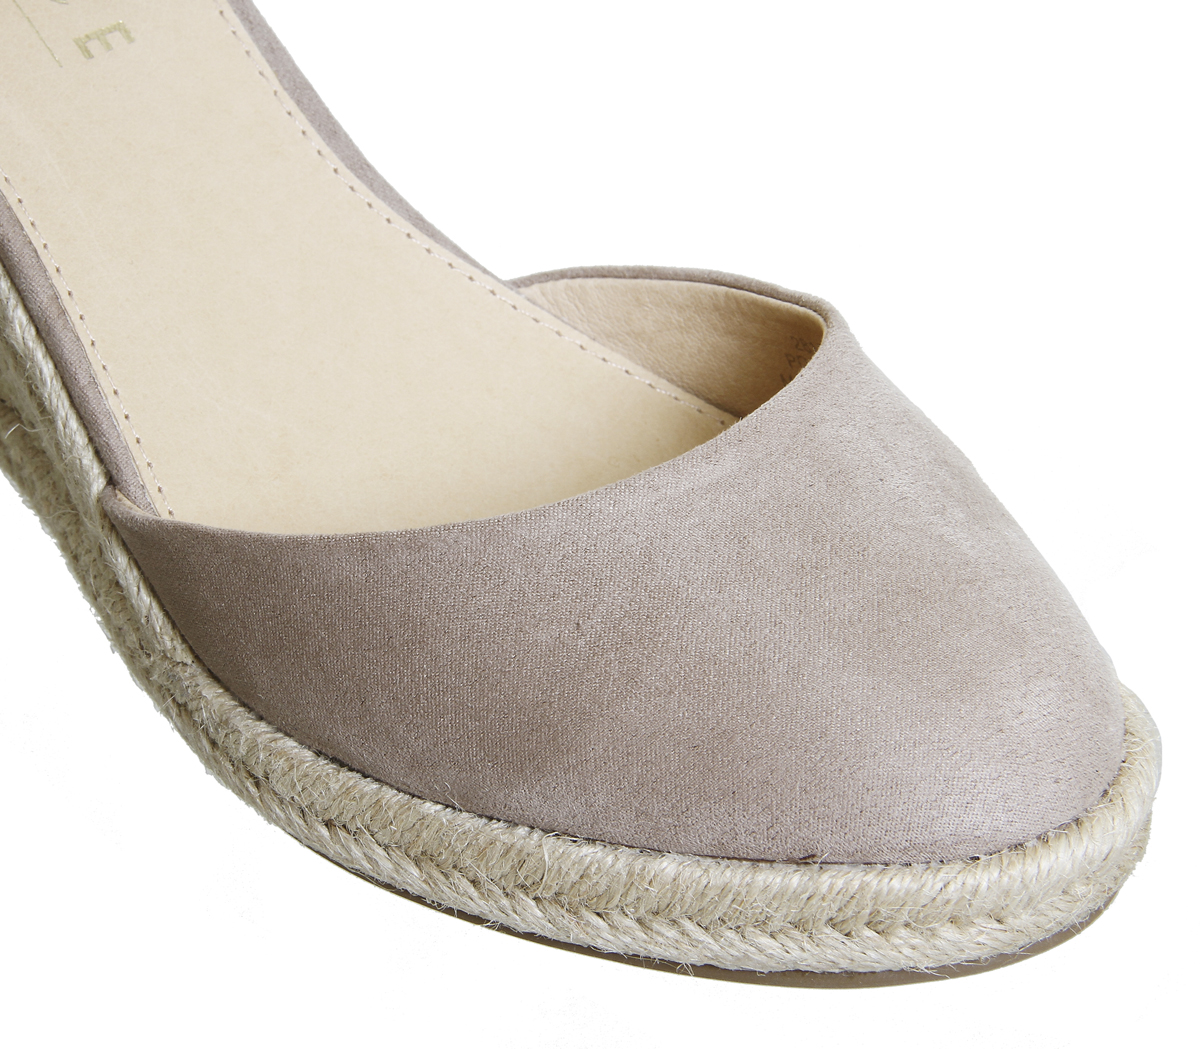 f852852a8b1 Womens Office Marsha Closed Toe Espadrille Wedges Taupe With Gold ...